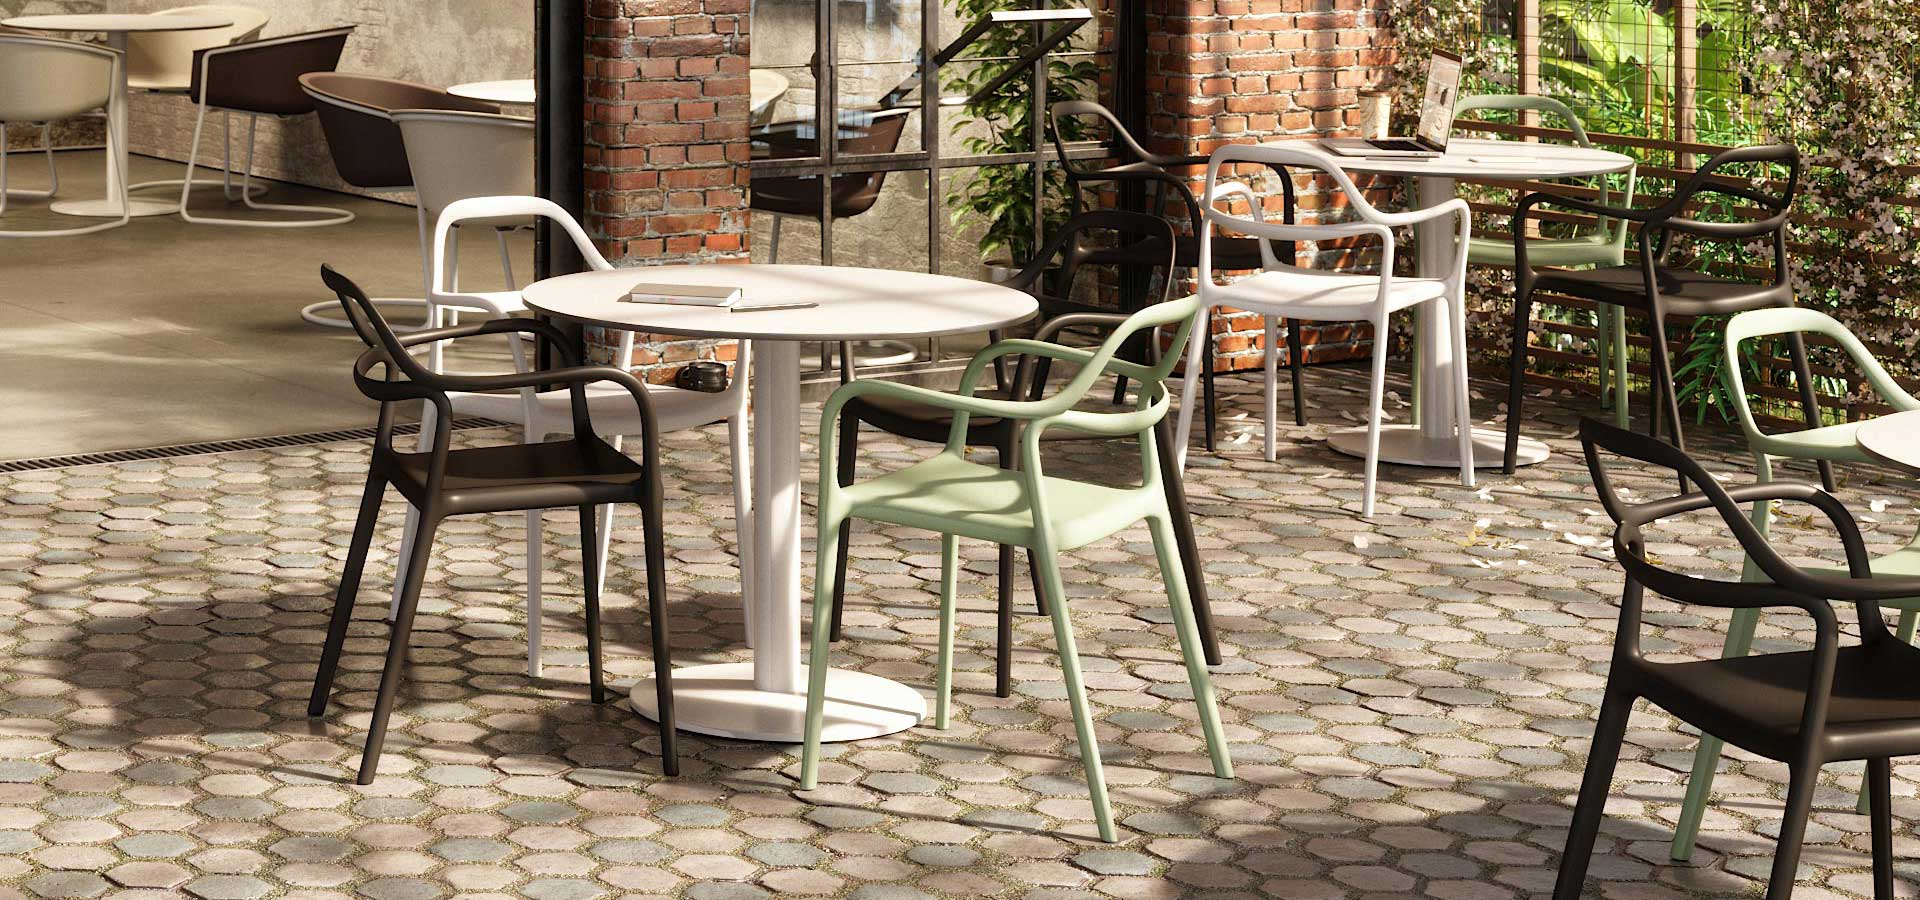 Express Yourself outdoor seating image